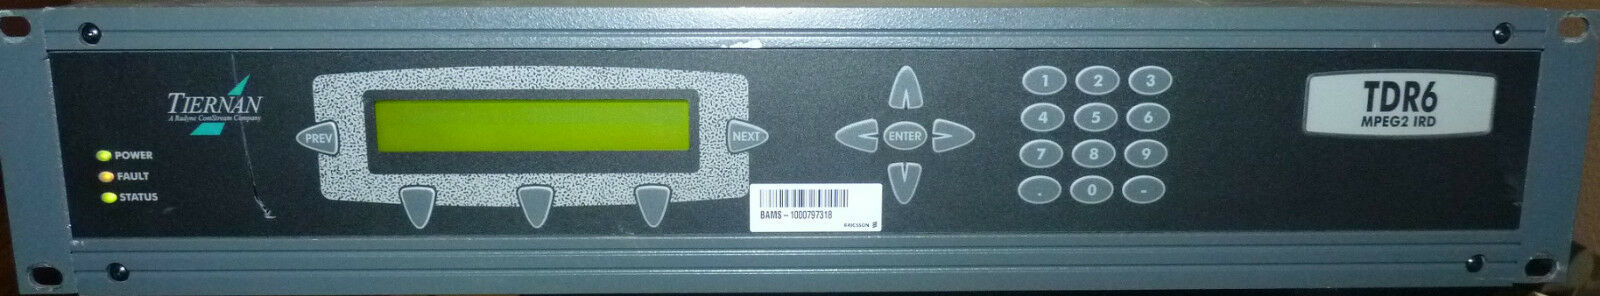 Tiernan TDR6 High Performance Modular Receiver  Decoder MPEG-2 IRD